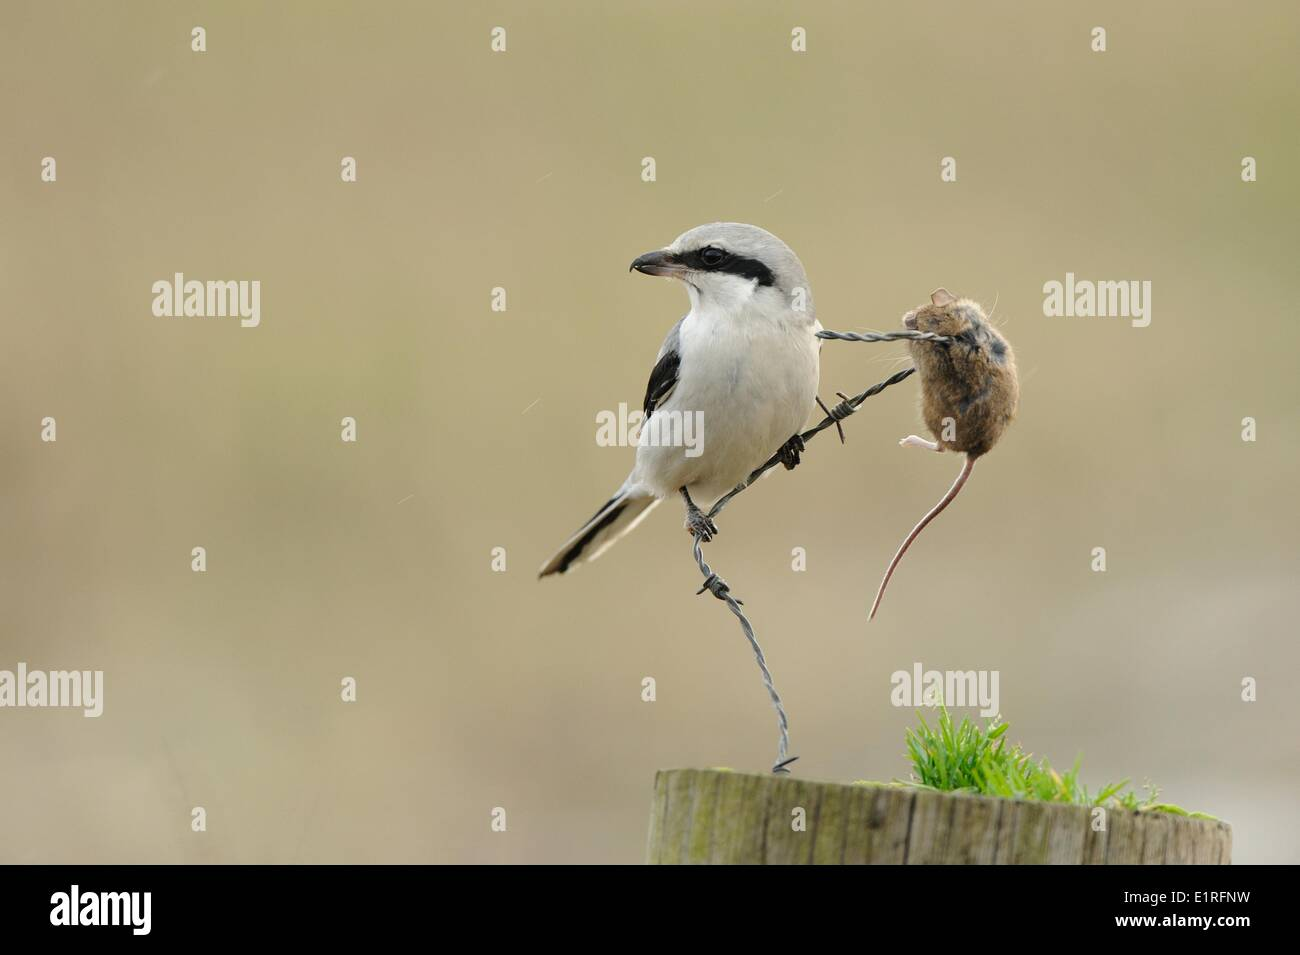 Great Grey Shrike feeding on mouse spiked on barbed wire - Stock Image